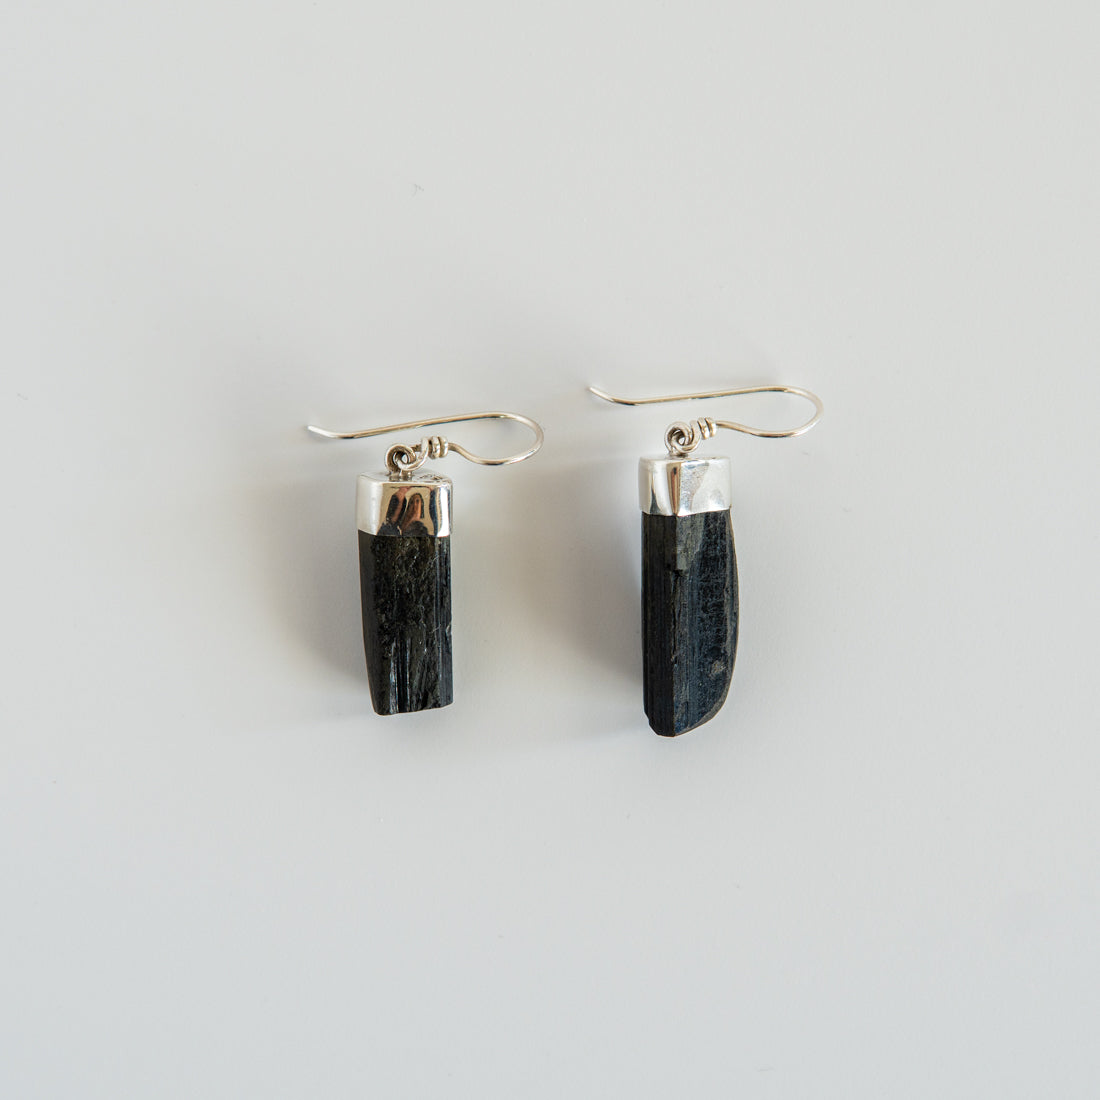 Protector Earrings in Black Tourmaline